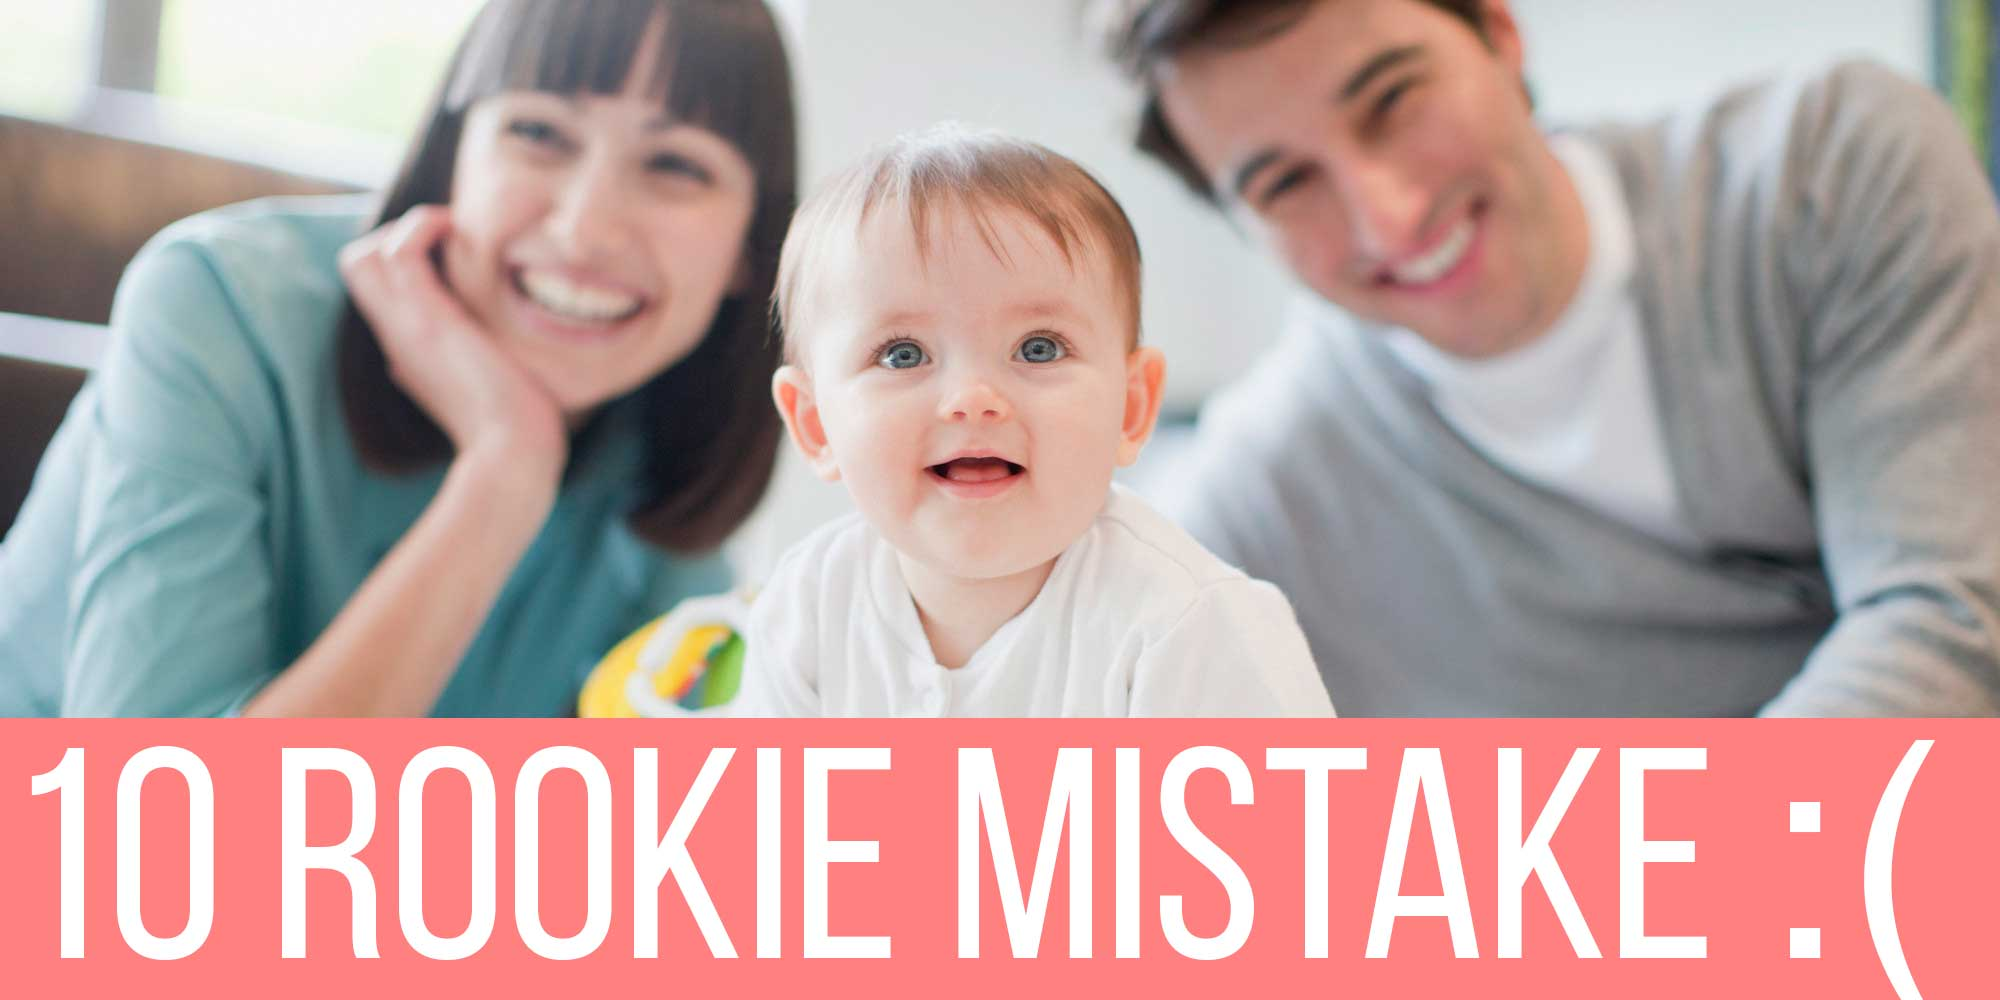 Top 10 MISTAKE made by ROOKIE PARENTS